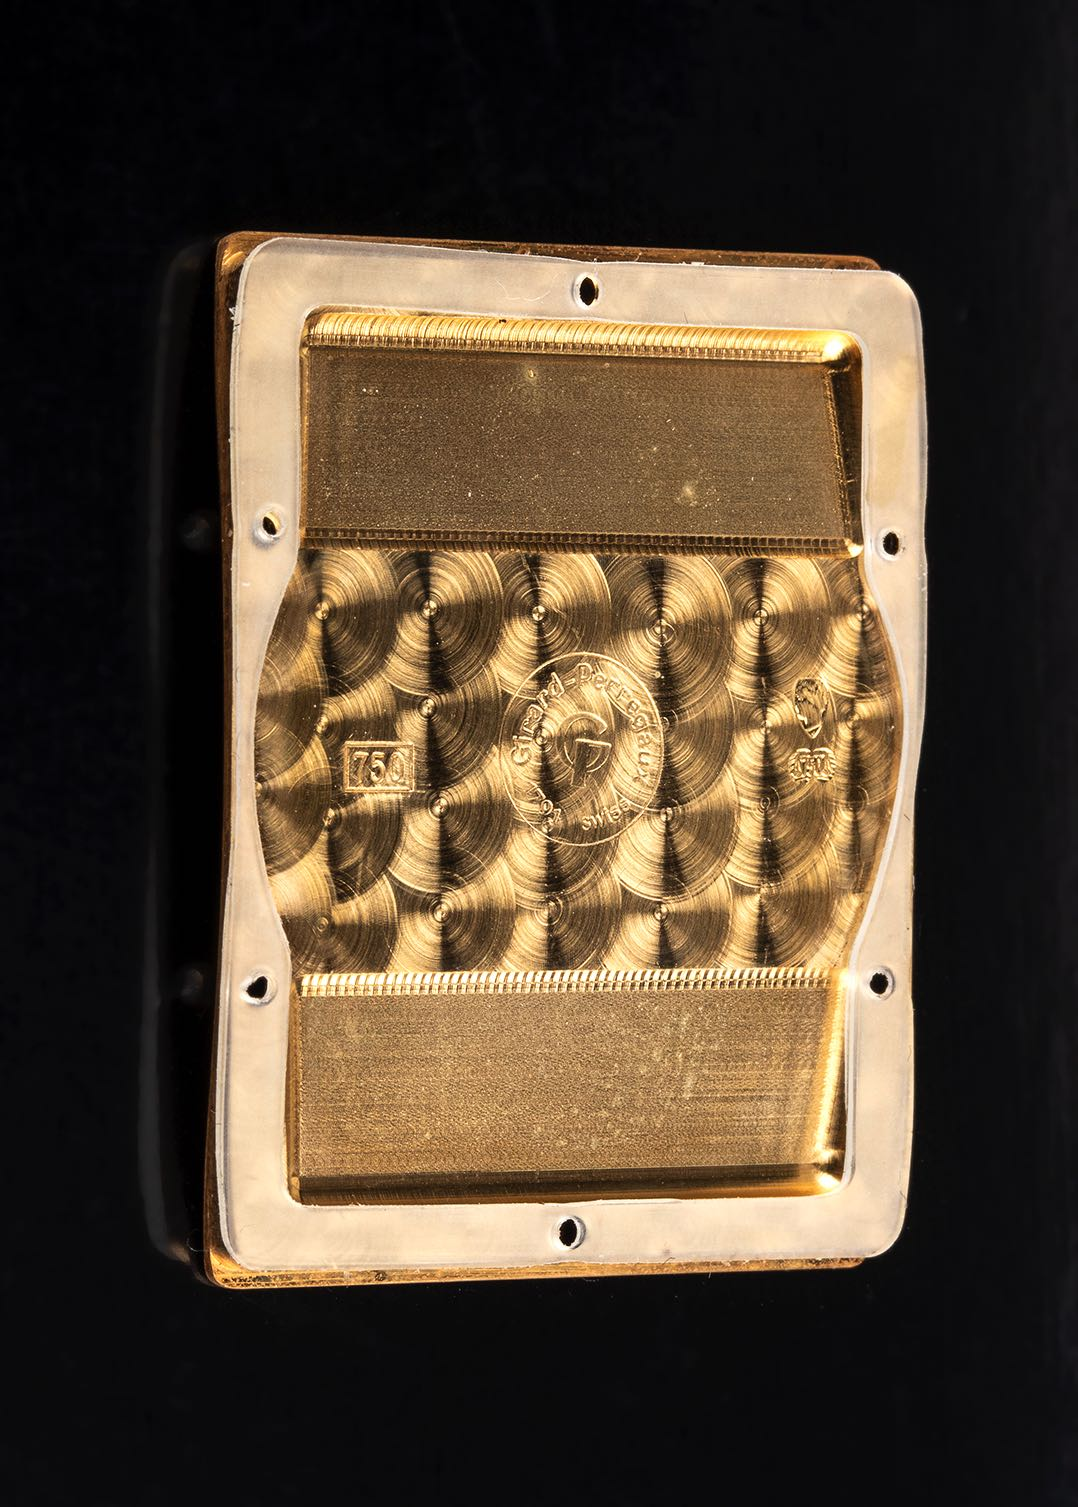 Girard Perregaux, 18 kt gold, 1791/1991 anniversary, Limited Edition, Ref.4961, Like N.O.S., full se - Image 3 of 4